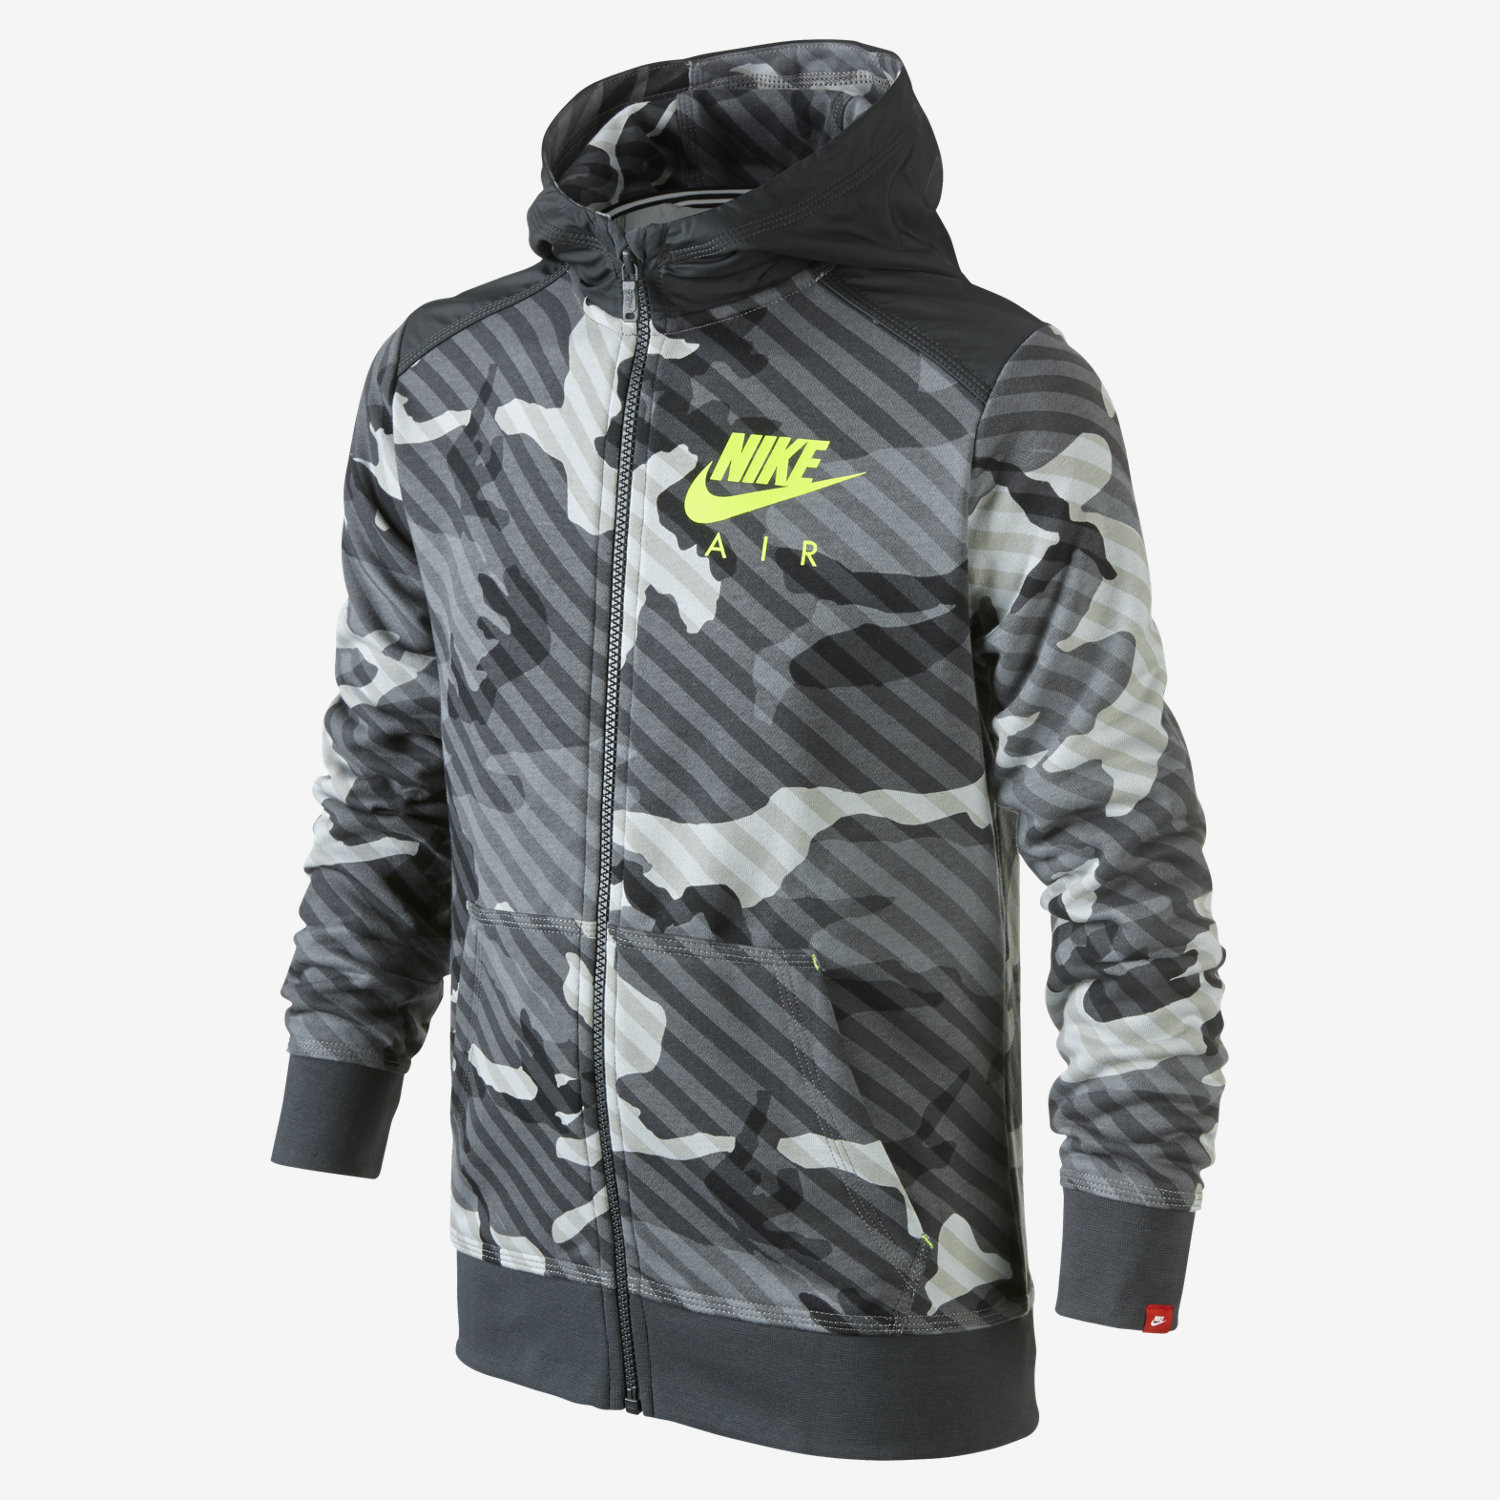 nike hoodies for boys camo images. Black Bedroom Furniture Sets. Home Design Ideas